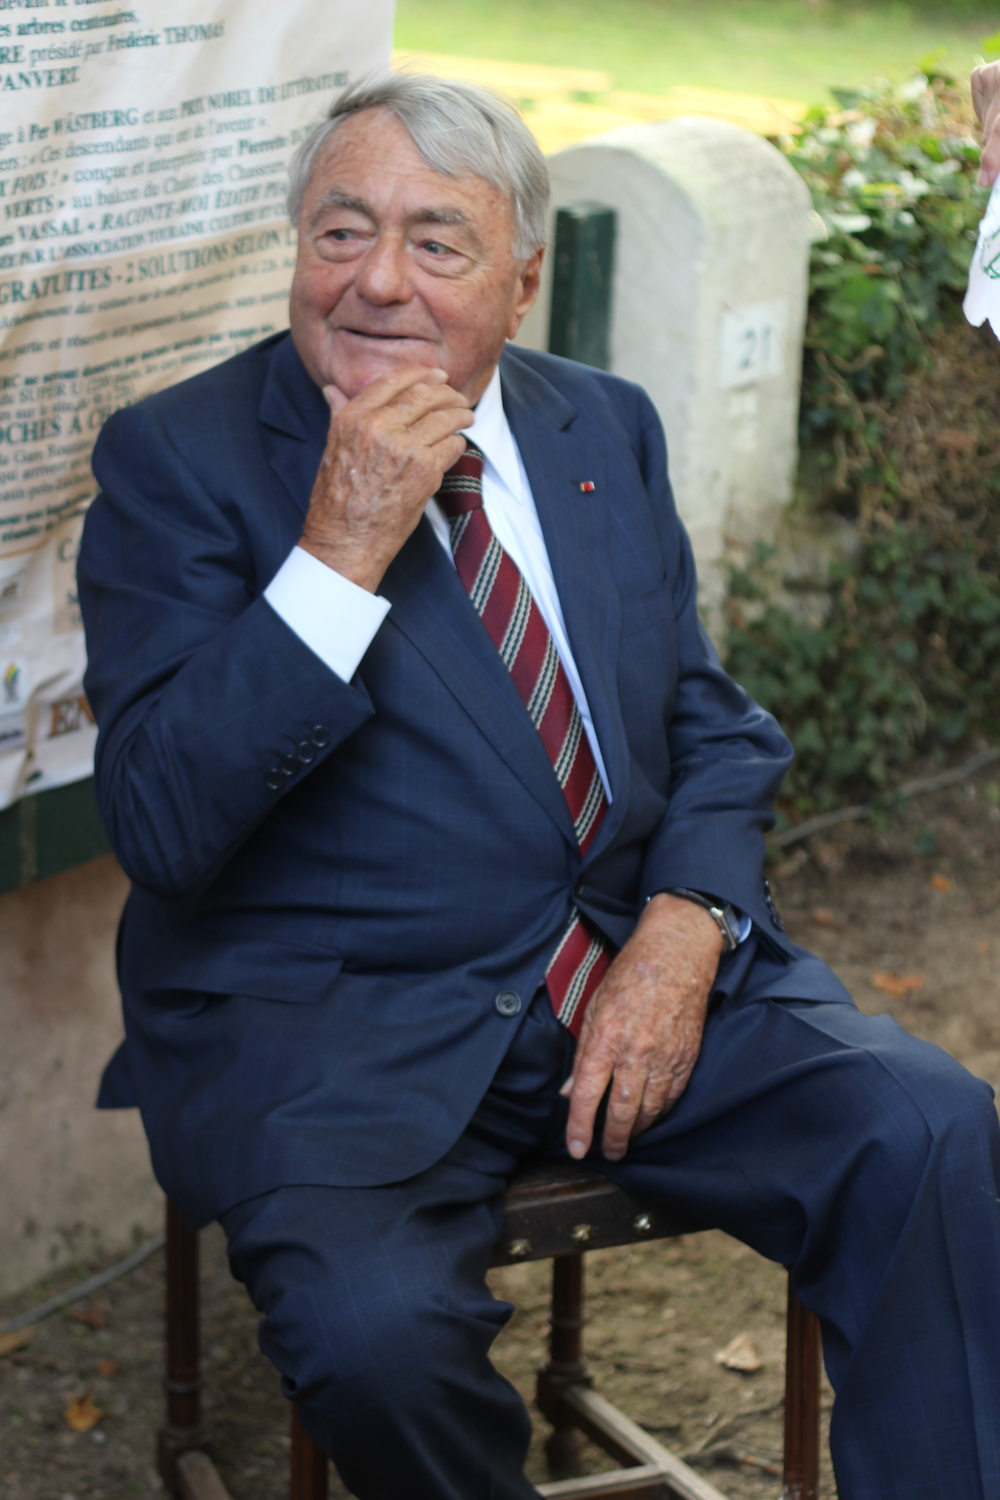 French Jewish filmmaker Claude Lanzmann. Credit: Wikimedia Commons.